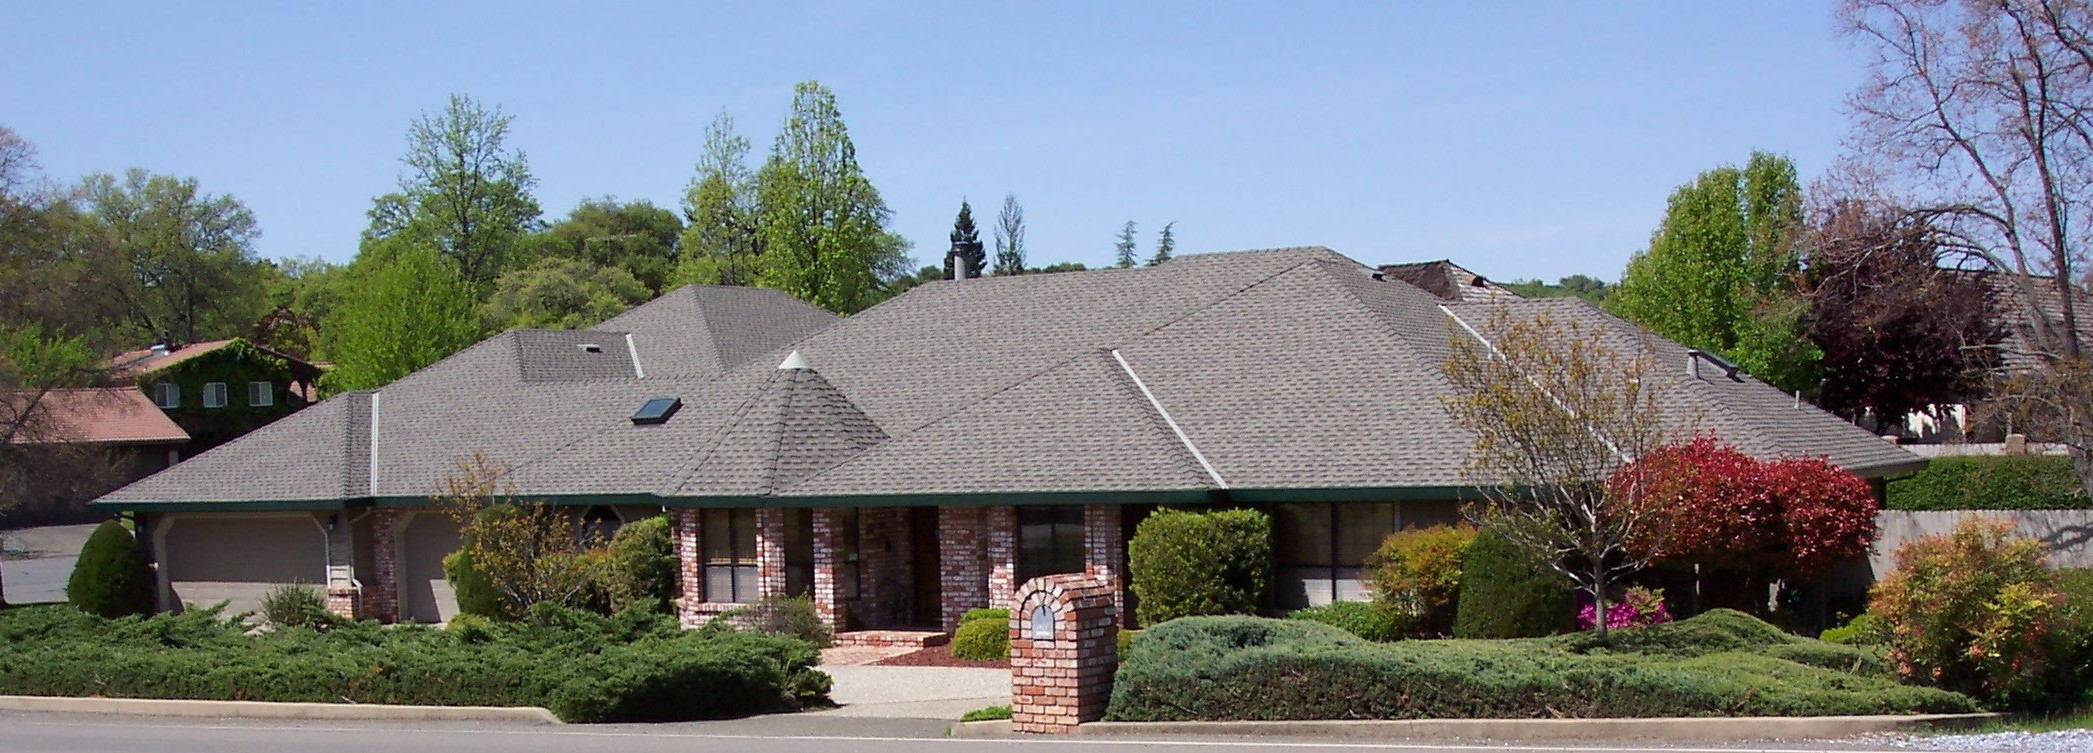 Straight Line Roofing Amp Construction Shingle Springs Ca